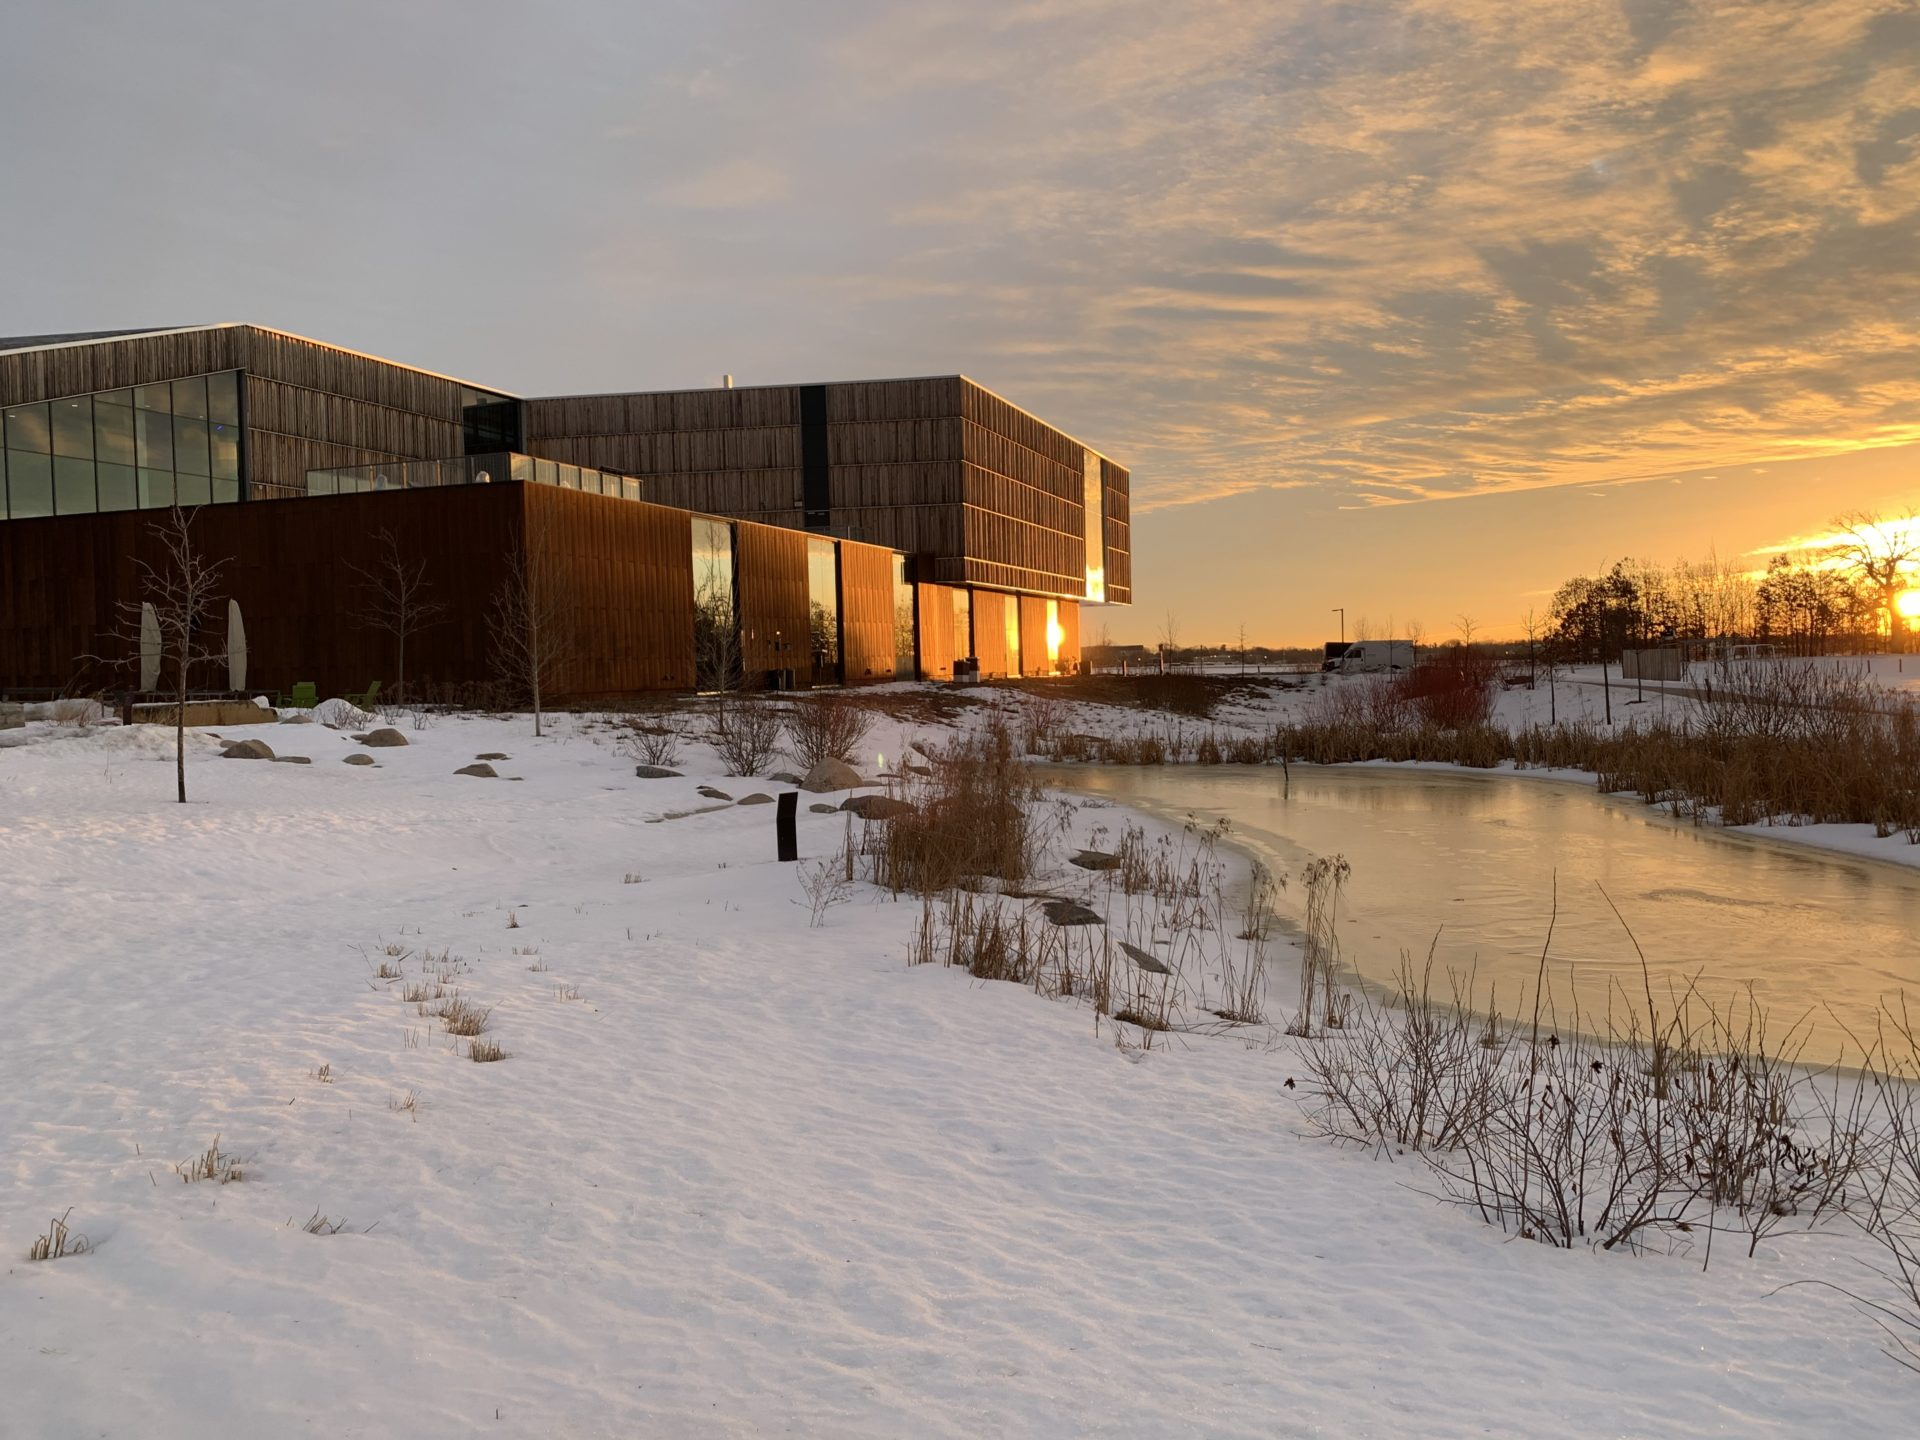 Bell museum at sunset in winter, snow on the ground